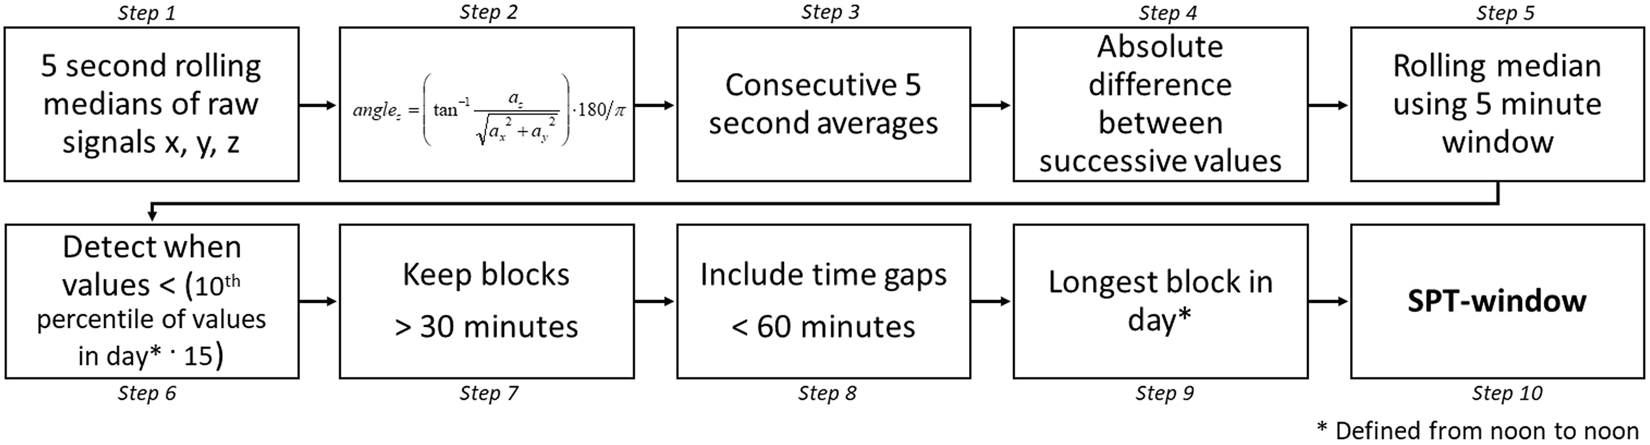 Estimating sleep parameters using an accelerometer without sleep